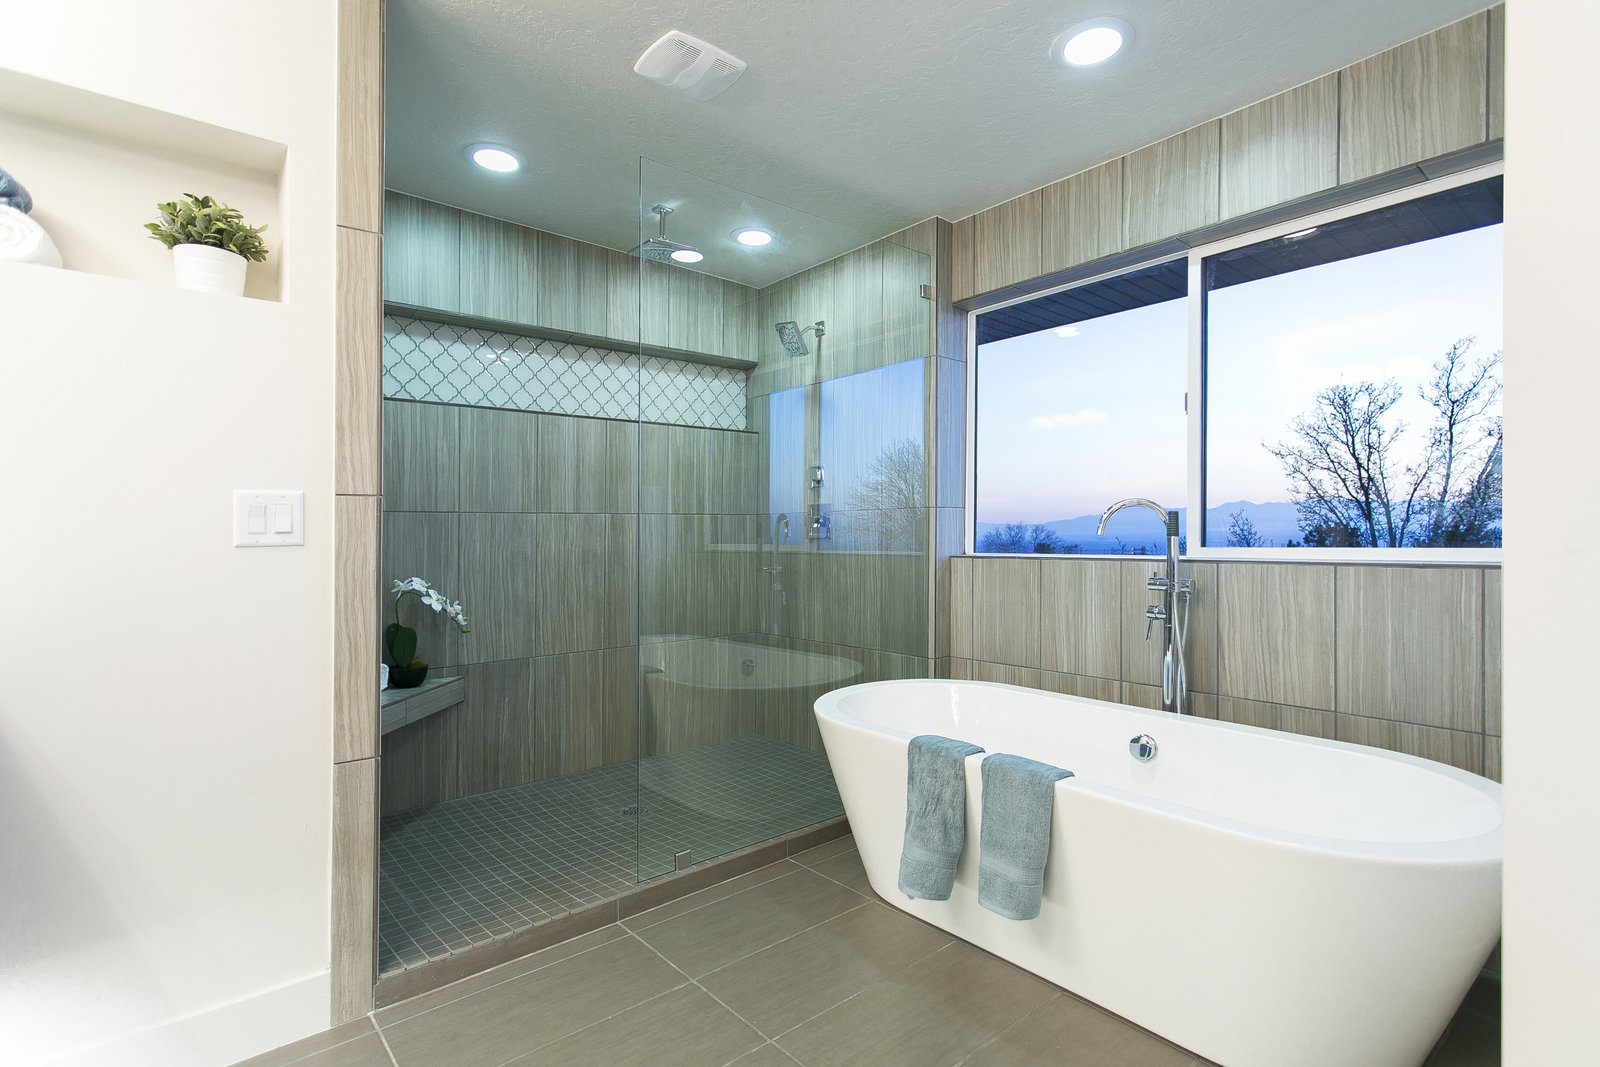 The master bathroom has been fully reworked to capitalize on the sweeping views that can be seen not just from the master bedroom but out the window perched directly above the soaking tub.  King of the Wasatch by The Muve Group